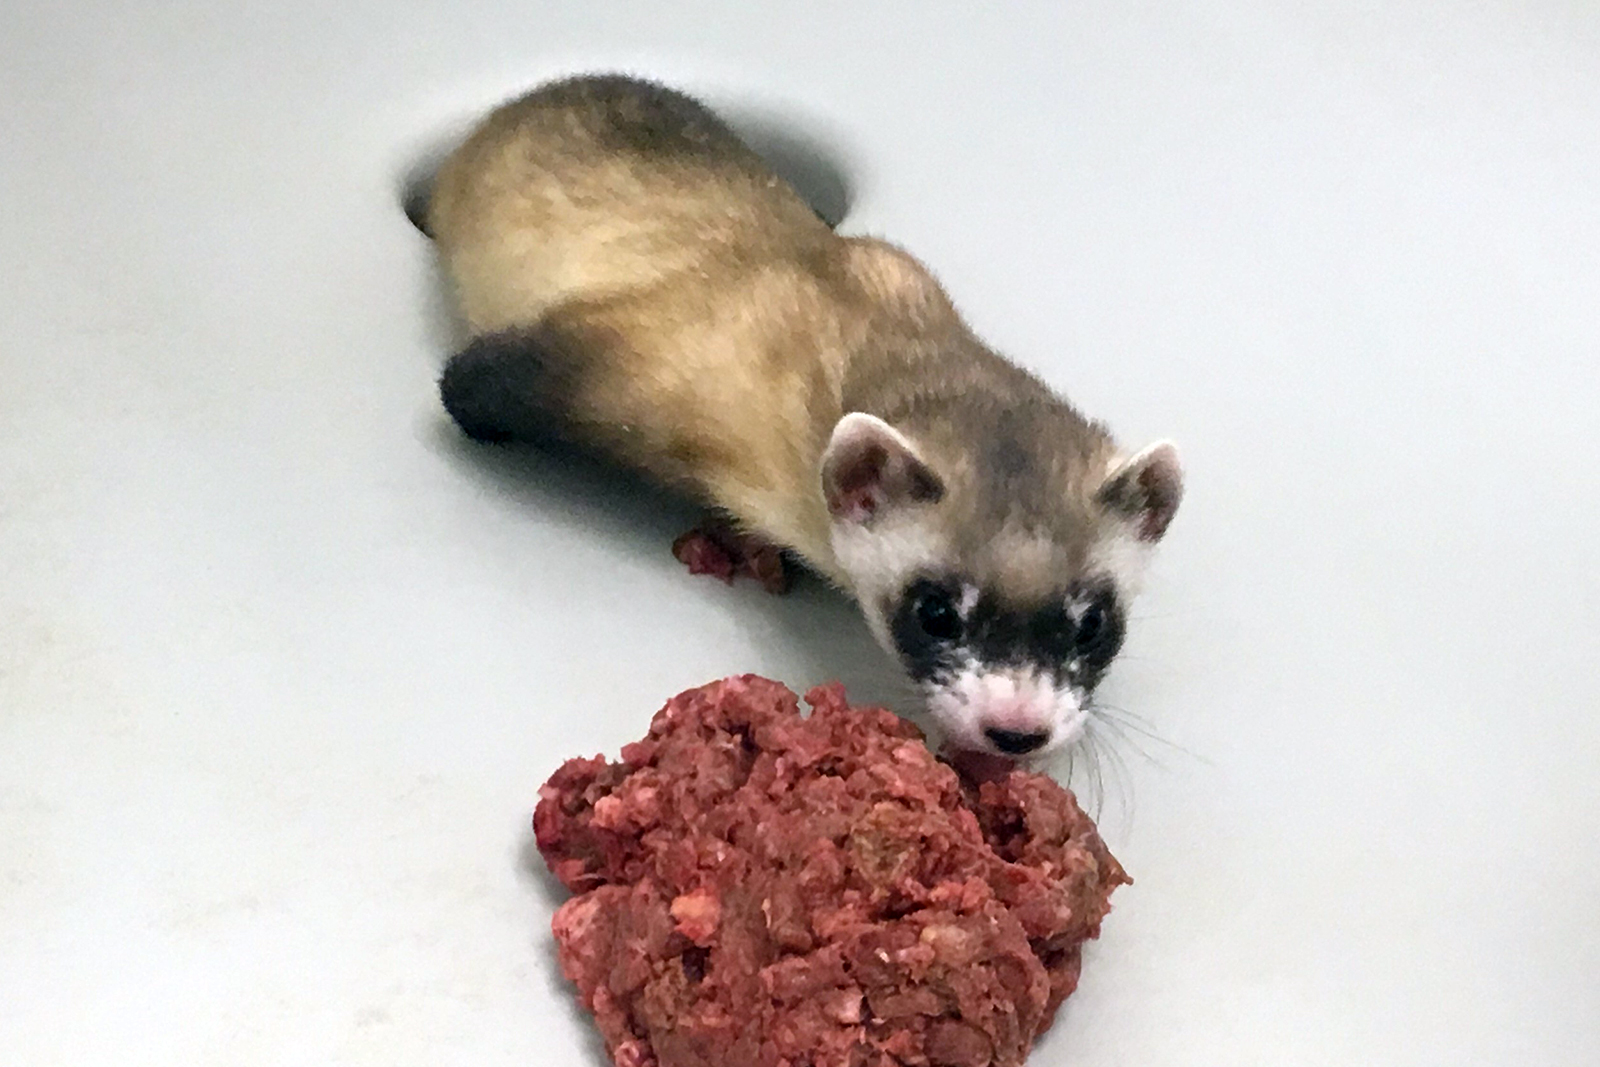 A ferret is the first North American endangered animal to be cloned